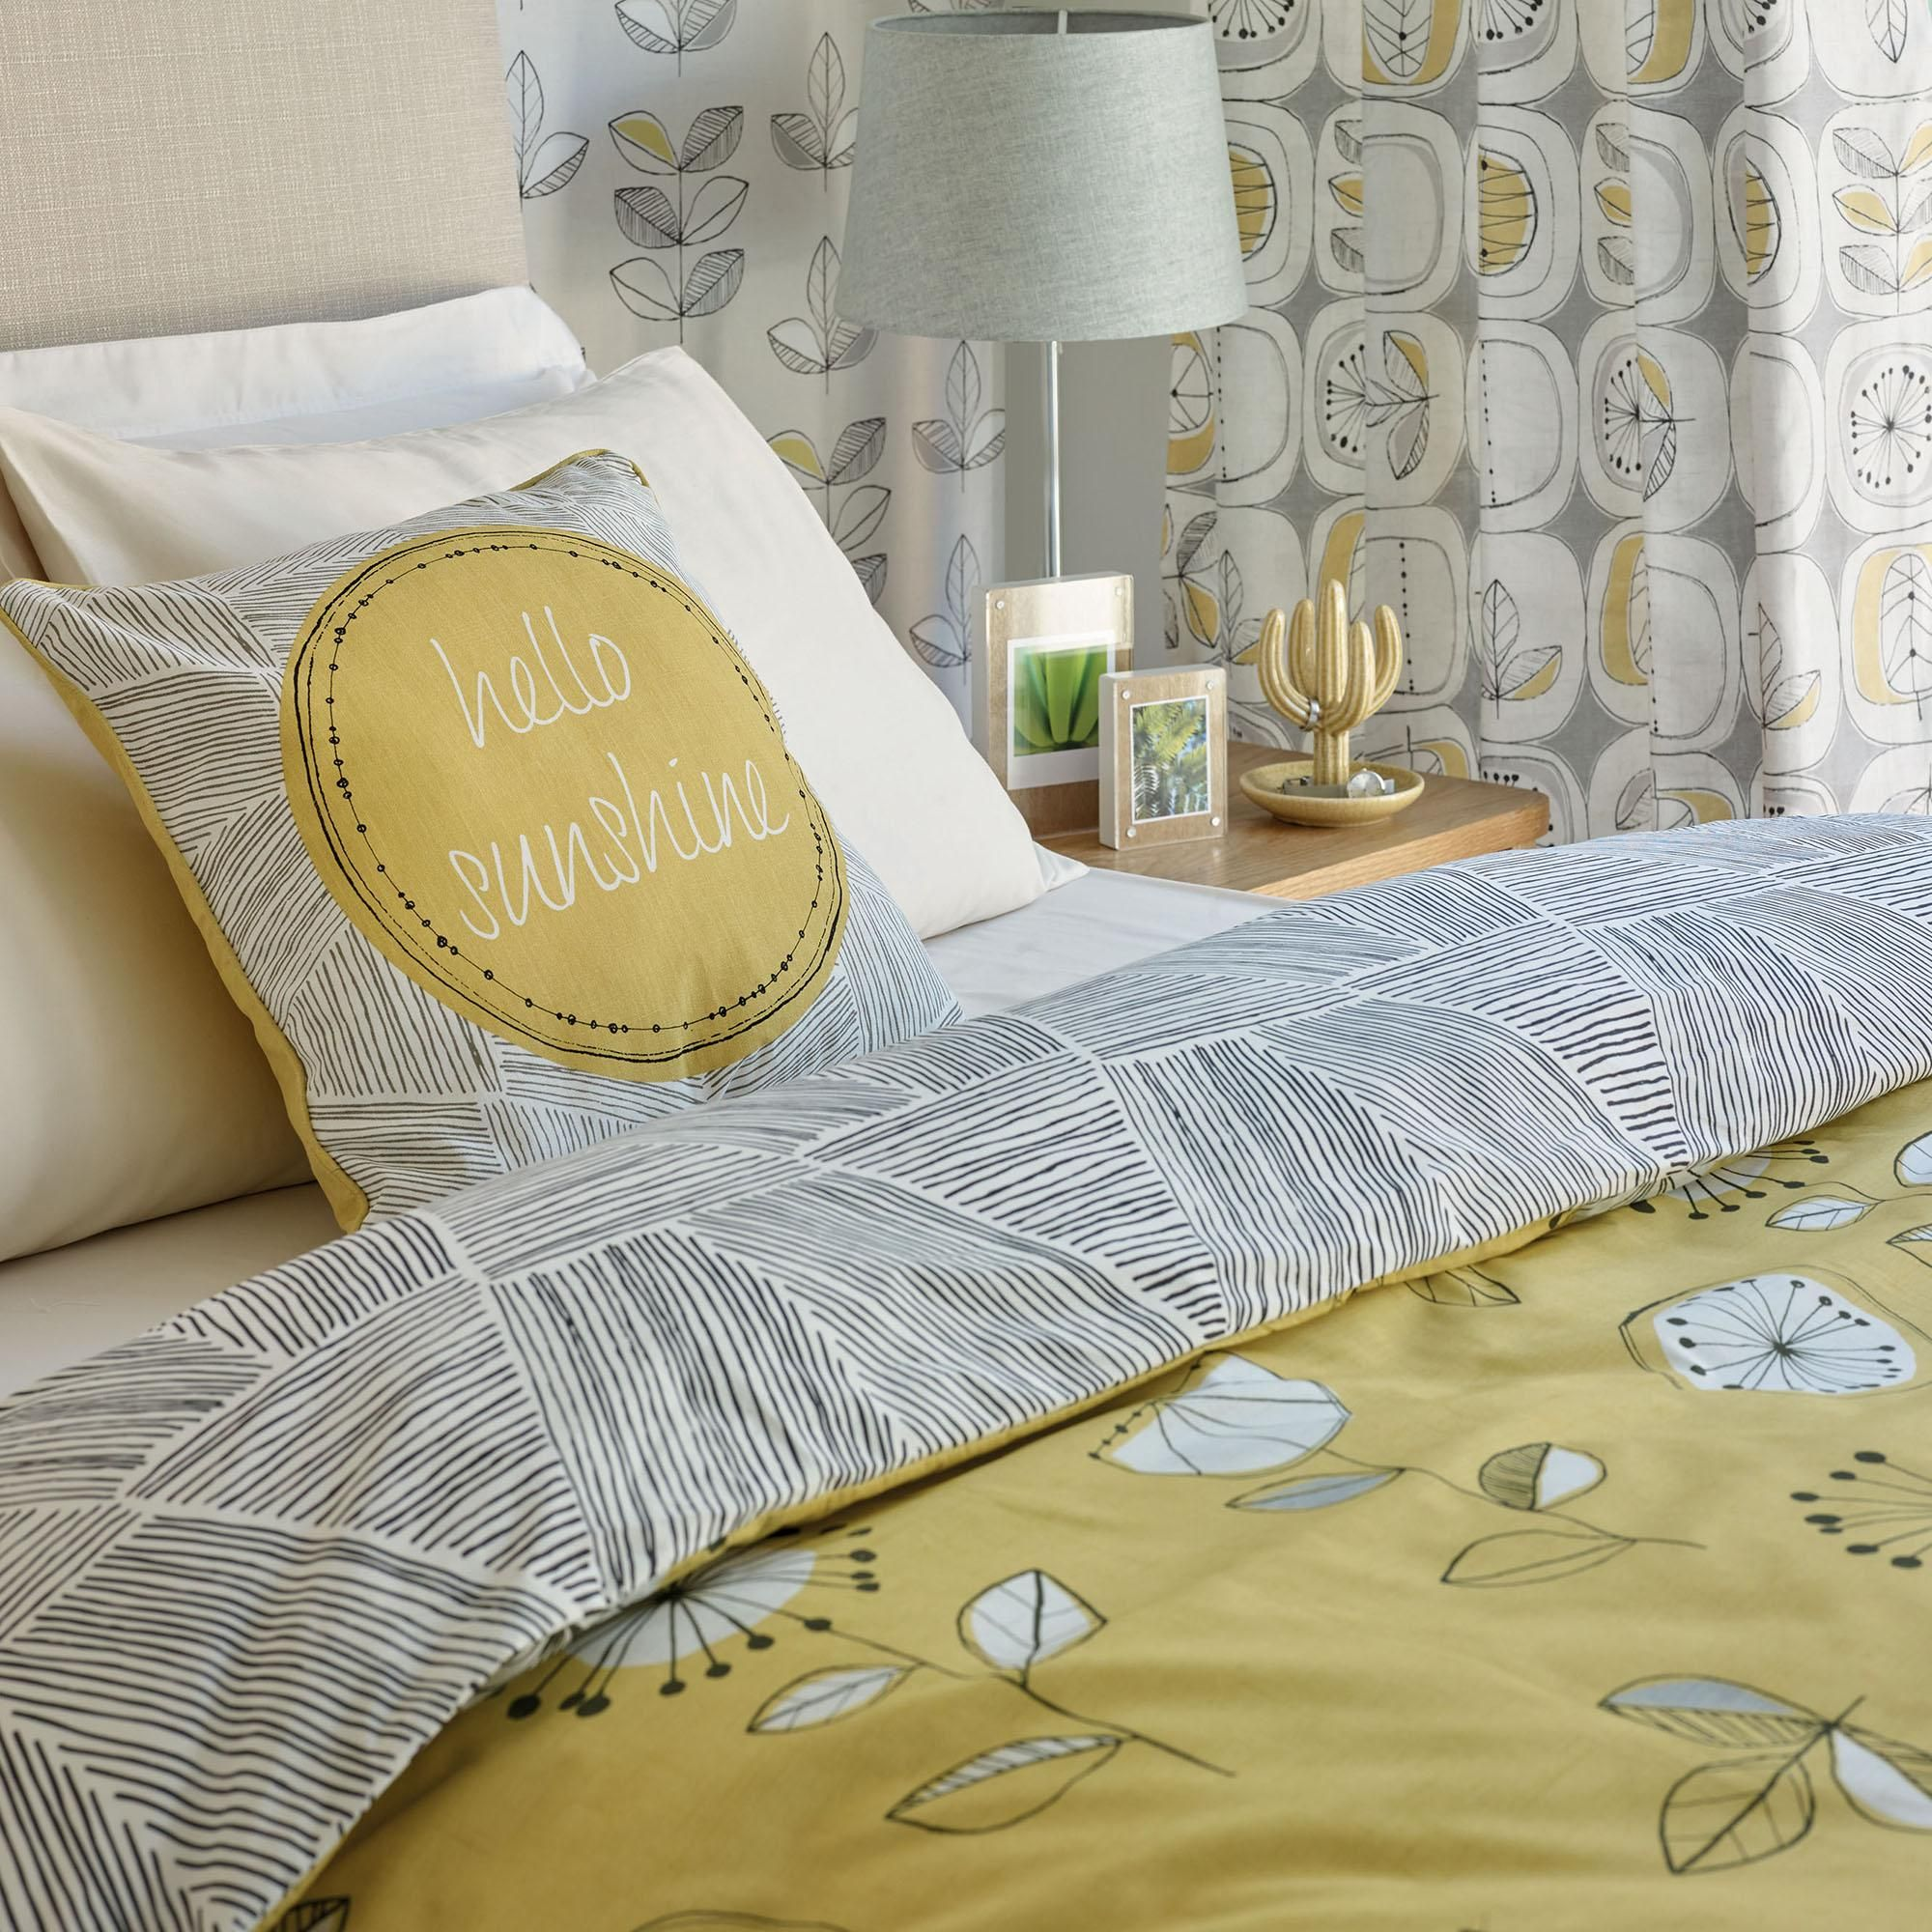 chic duvet today sawyer product shipping bedding home set overstock free bath yellow piece